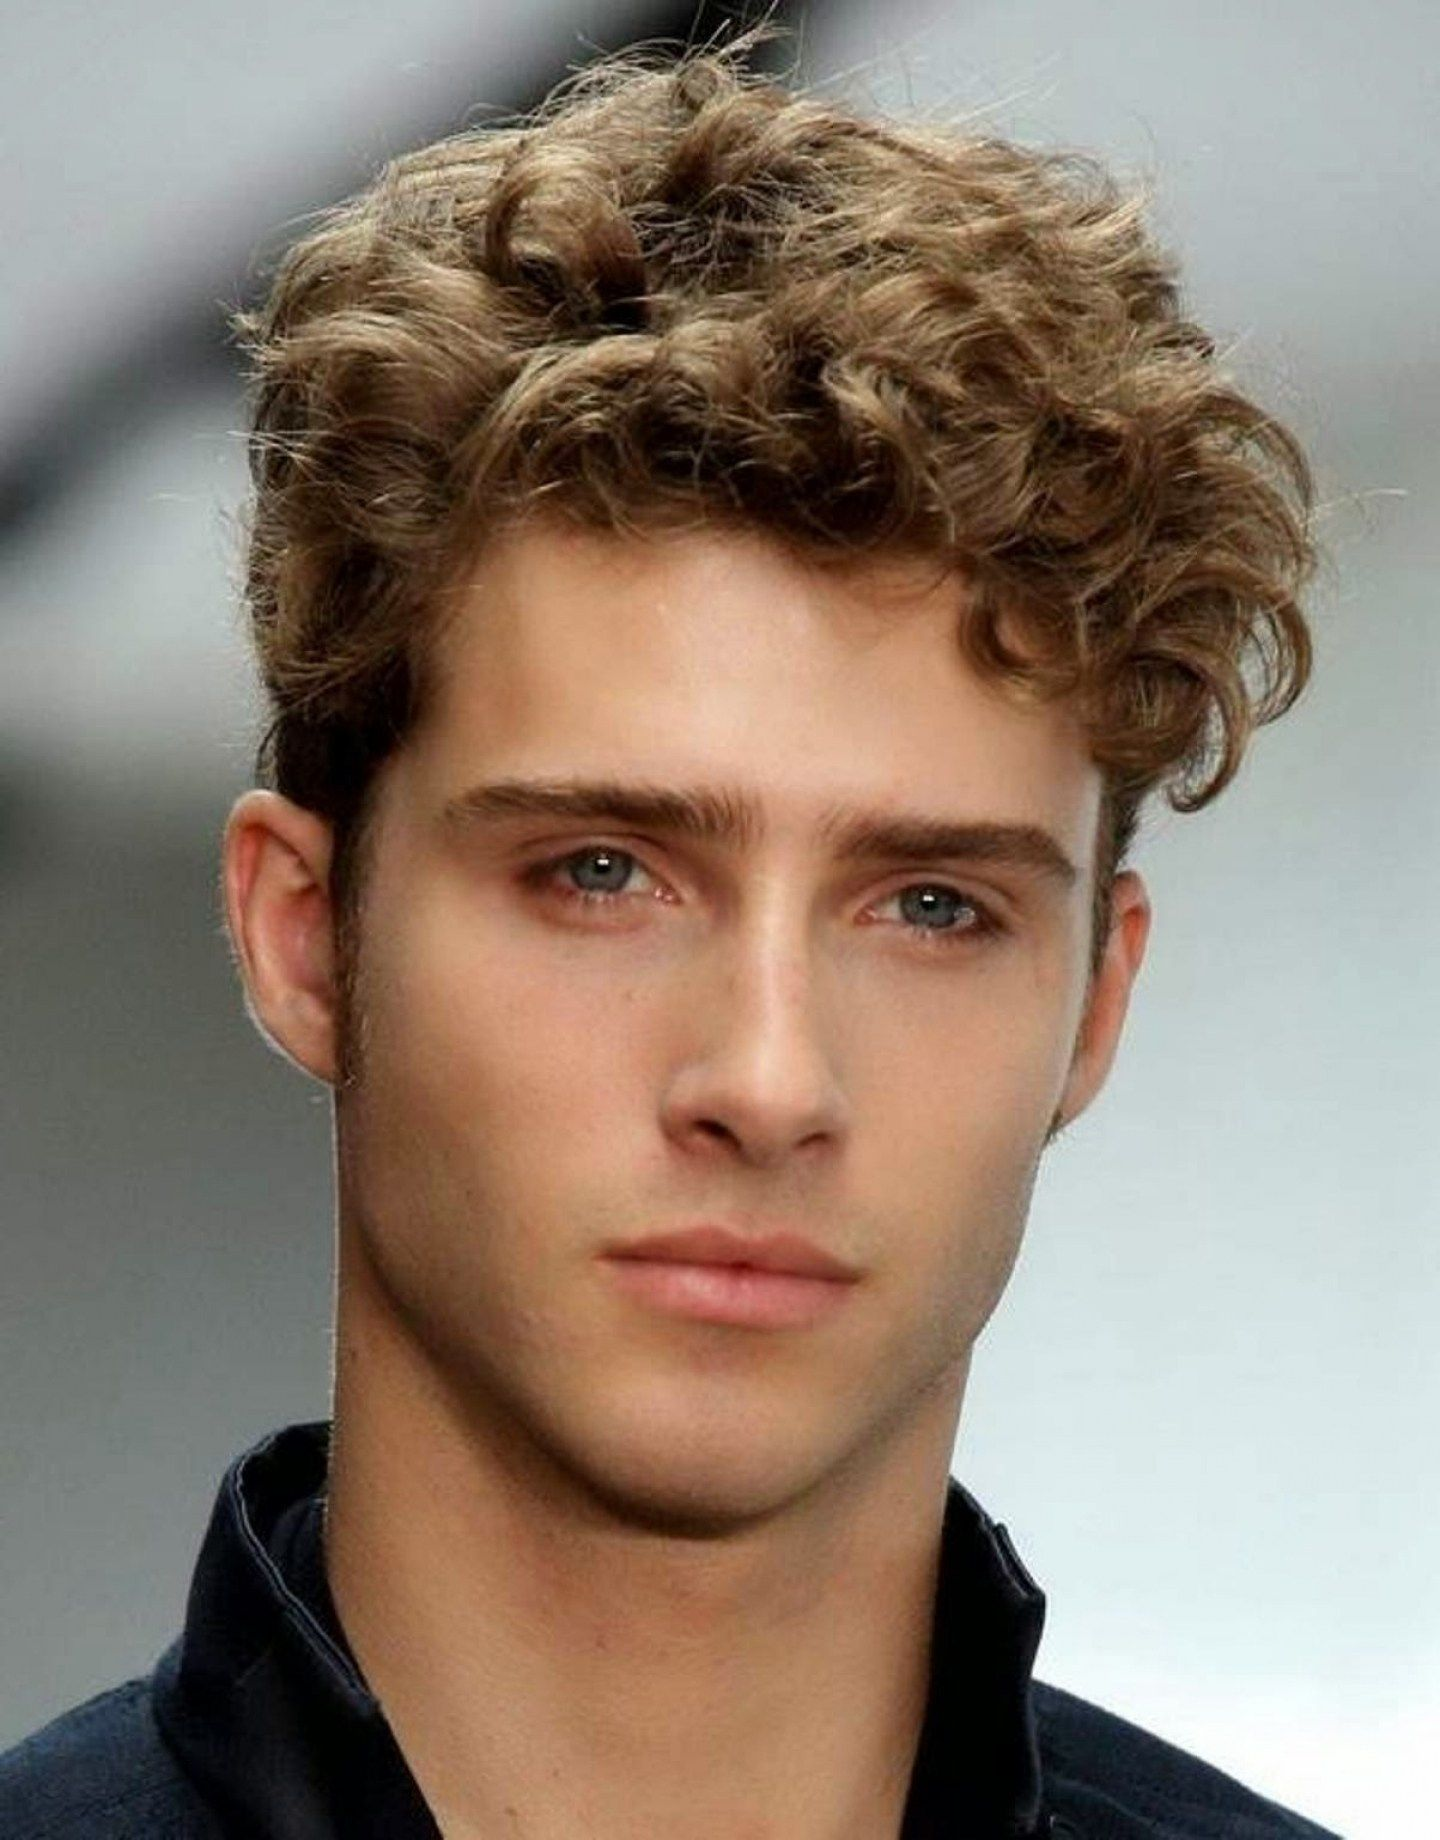 Neue Blonde Herren Frisuren Jungs 2019 Locken Frisurenjungs